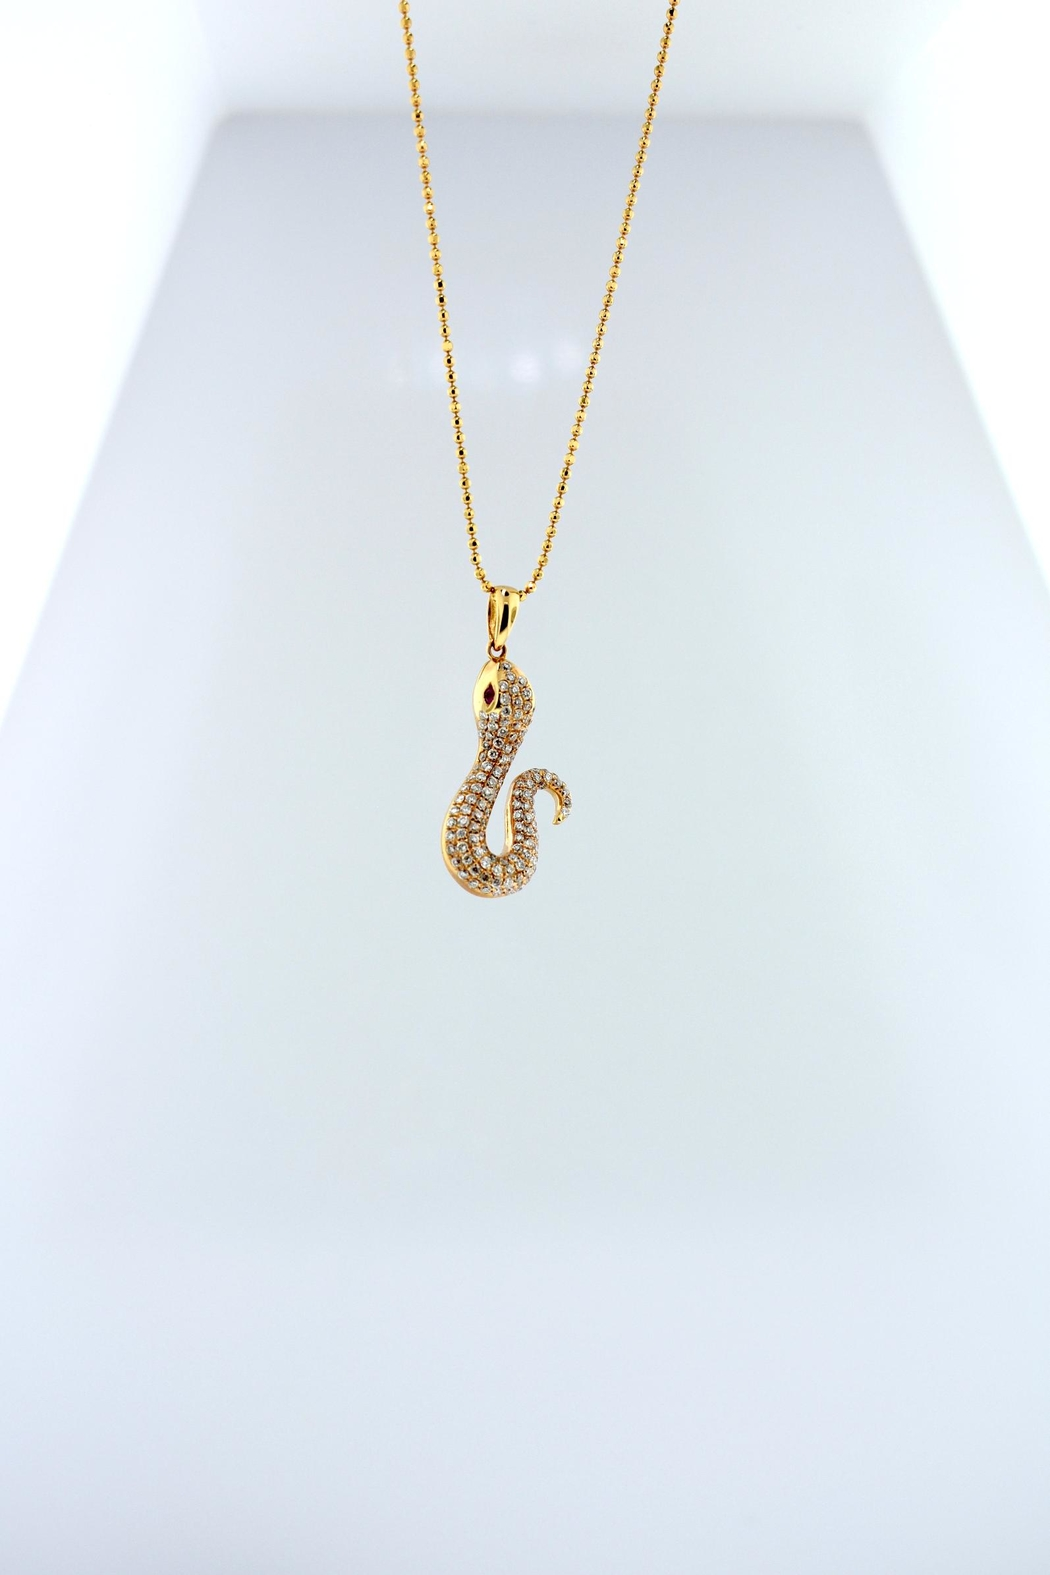 be shopping kite diamond mandler necklace fine gold lizzie jewelry